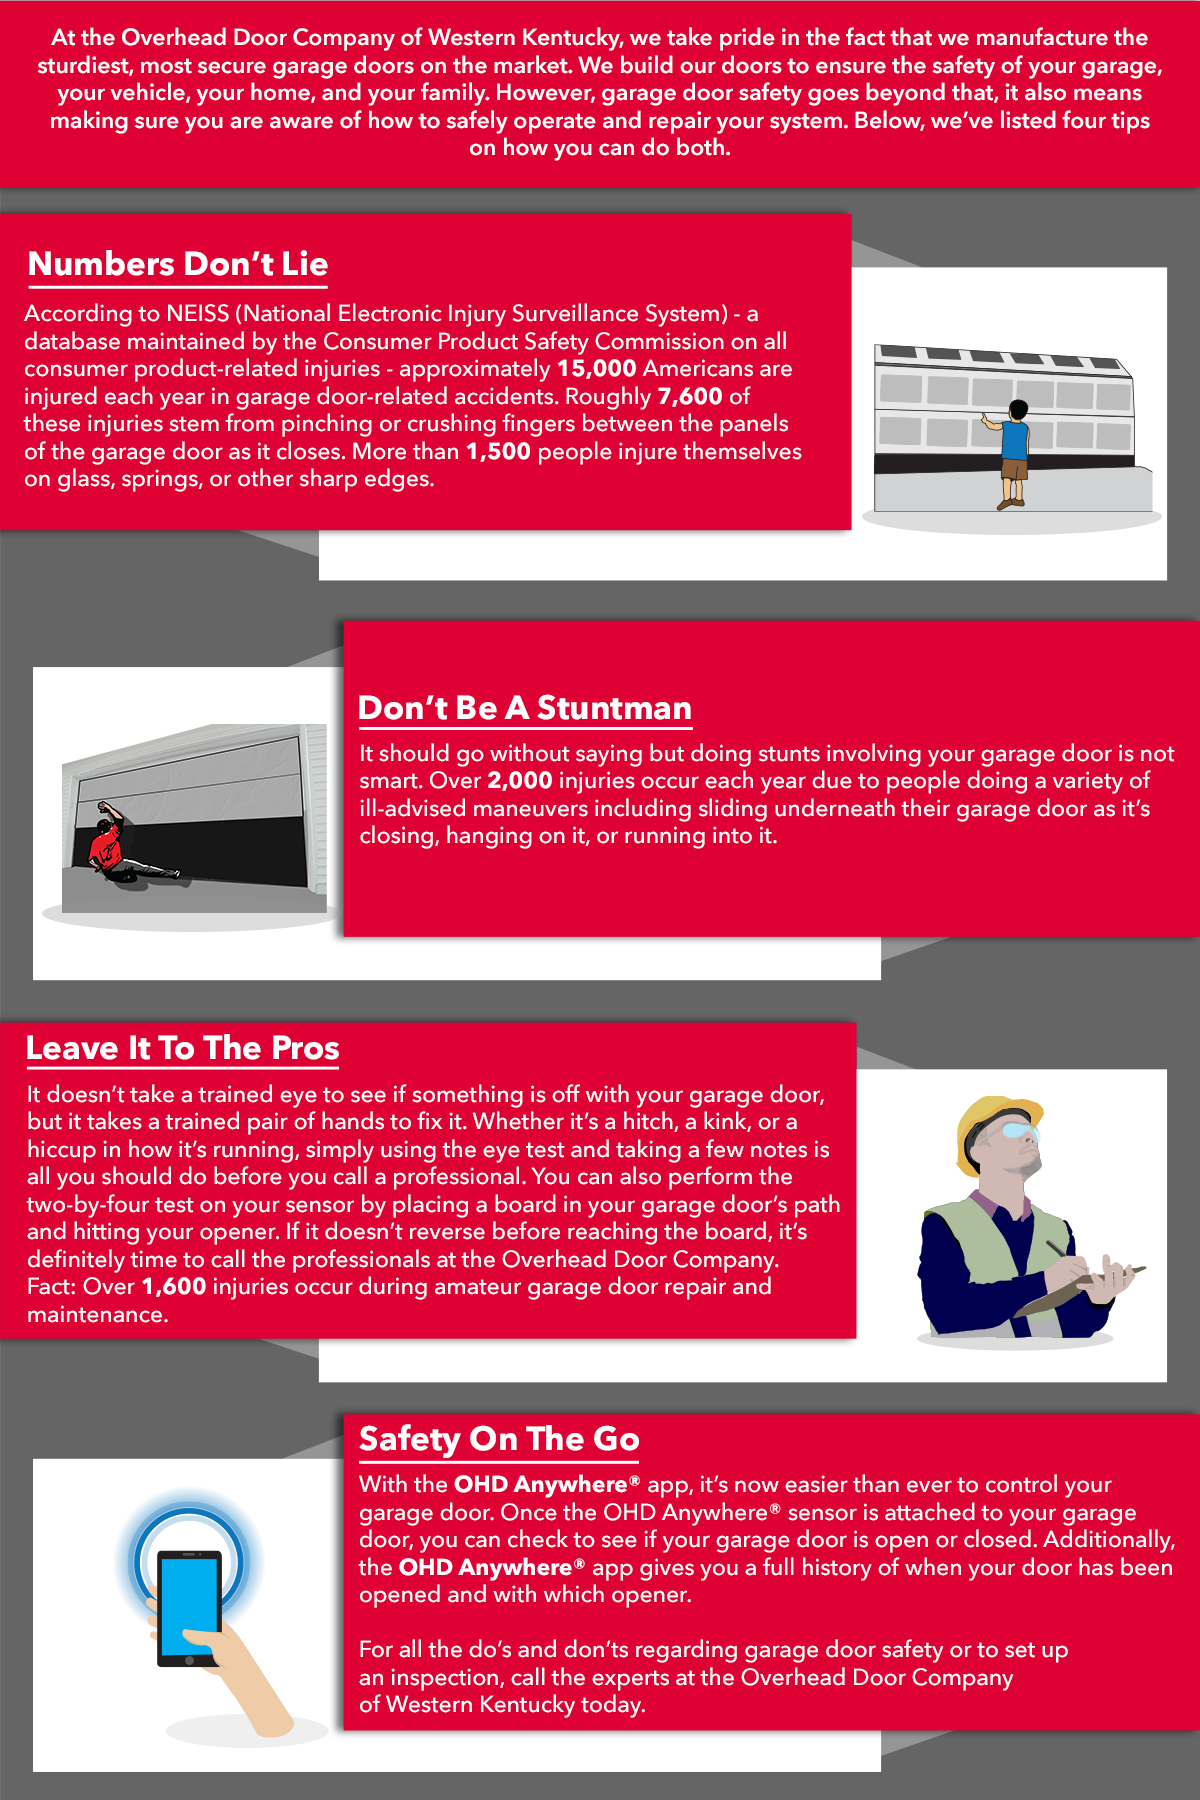 Overhead Company Infographic for Garage Door Safety Month